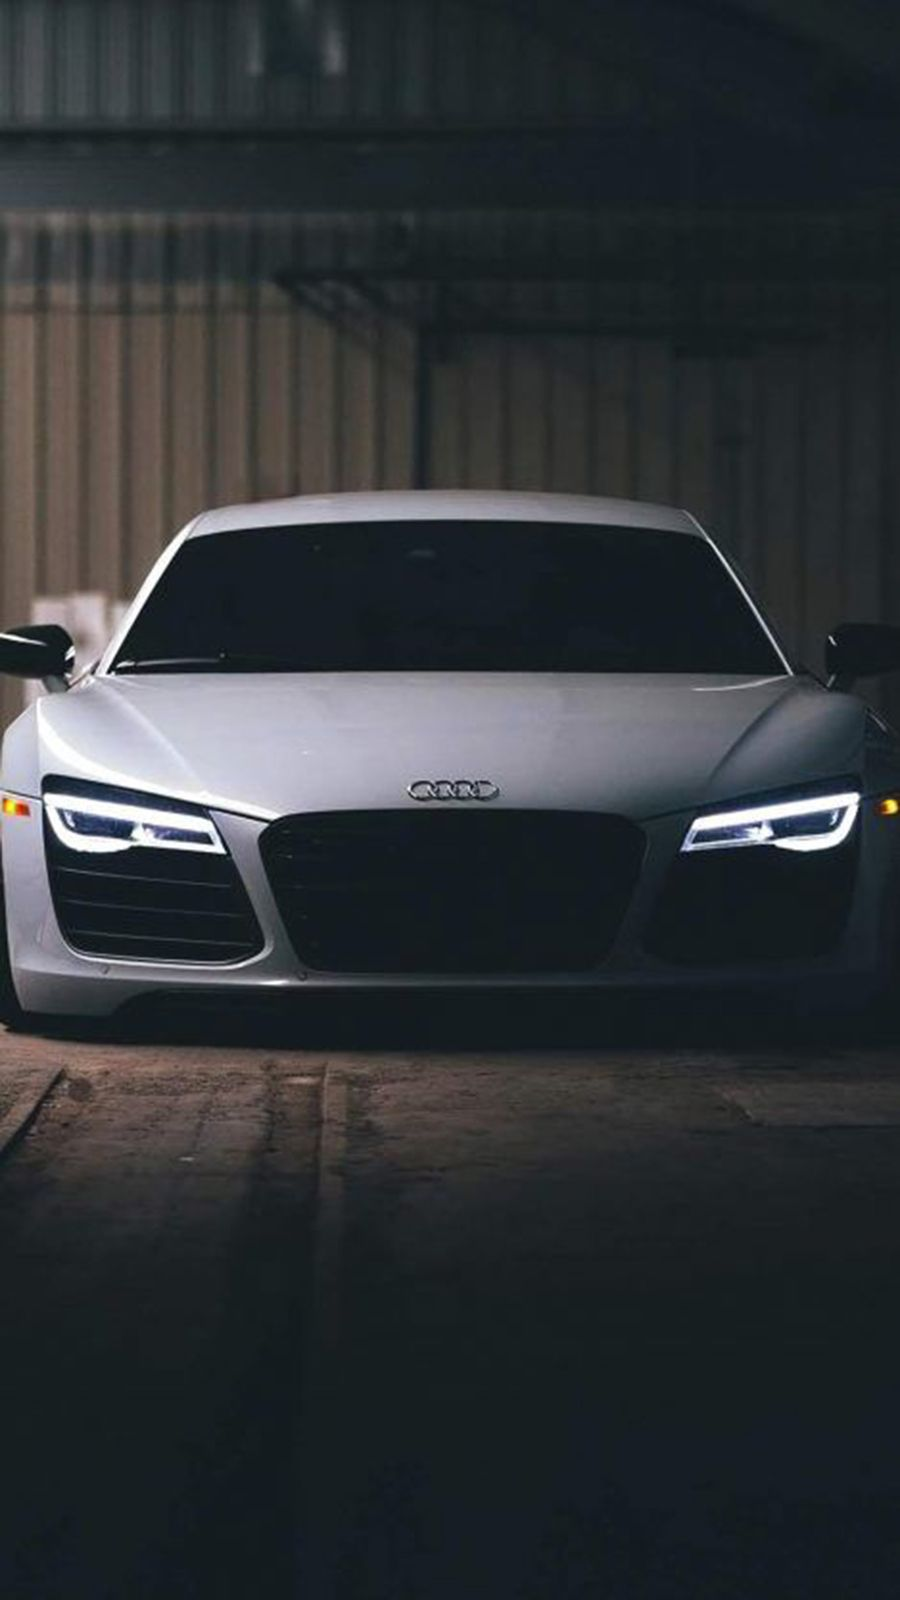 Audi R8 White Iphone Wallpaper Iphone Wallpapers In 2020 Audi Sports Car Sports Car Wallpaper Audi R8 Wallpaper